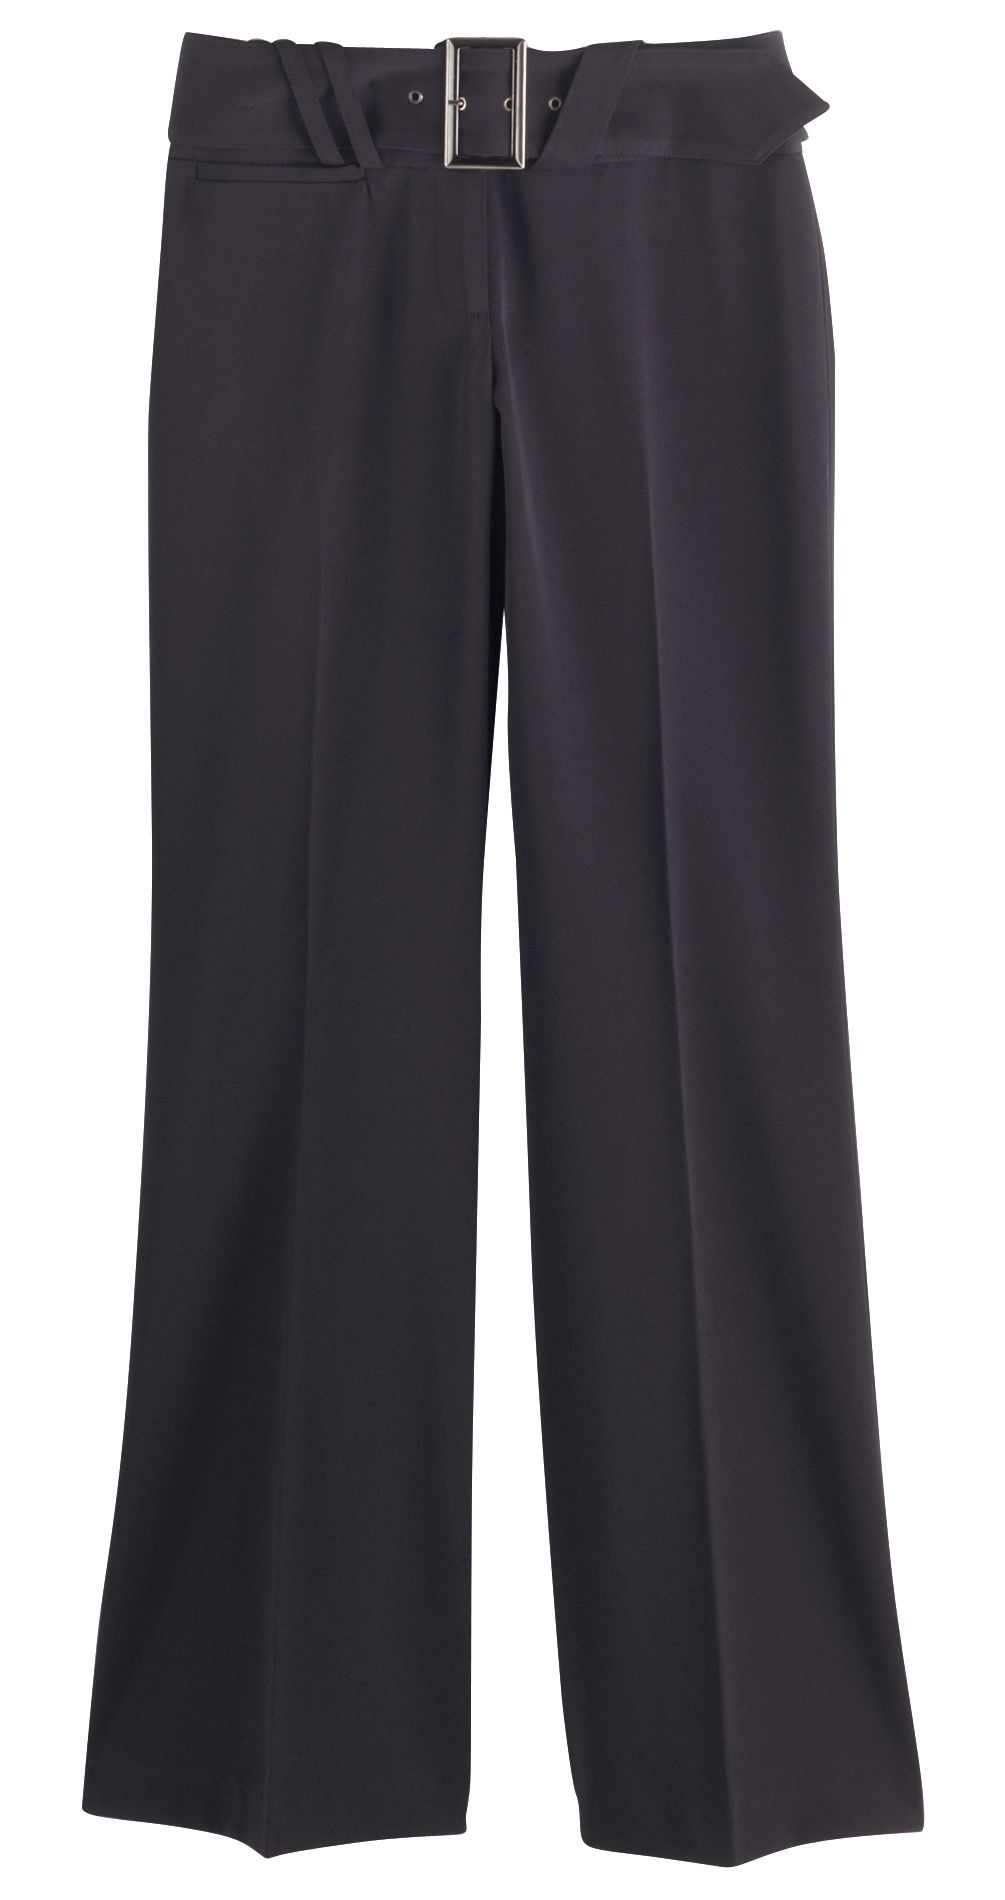 Star City Self Belt Pant at Kmart.com